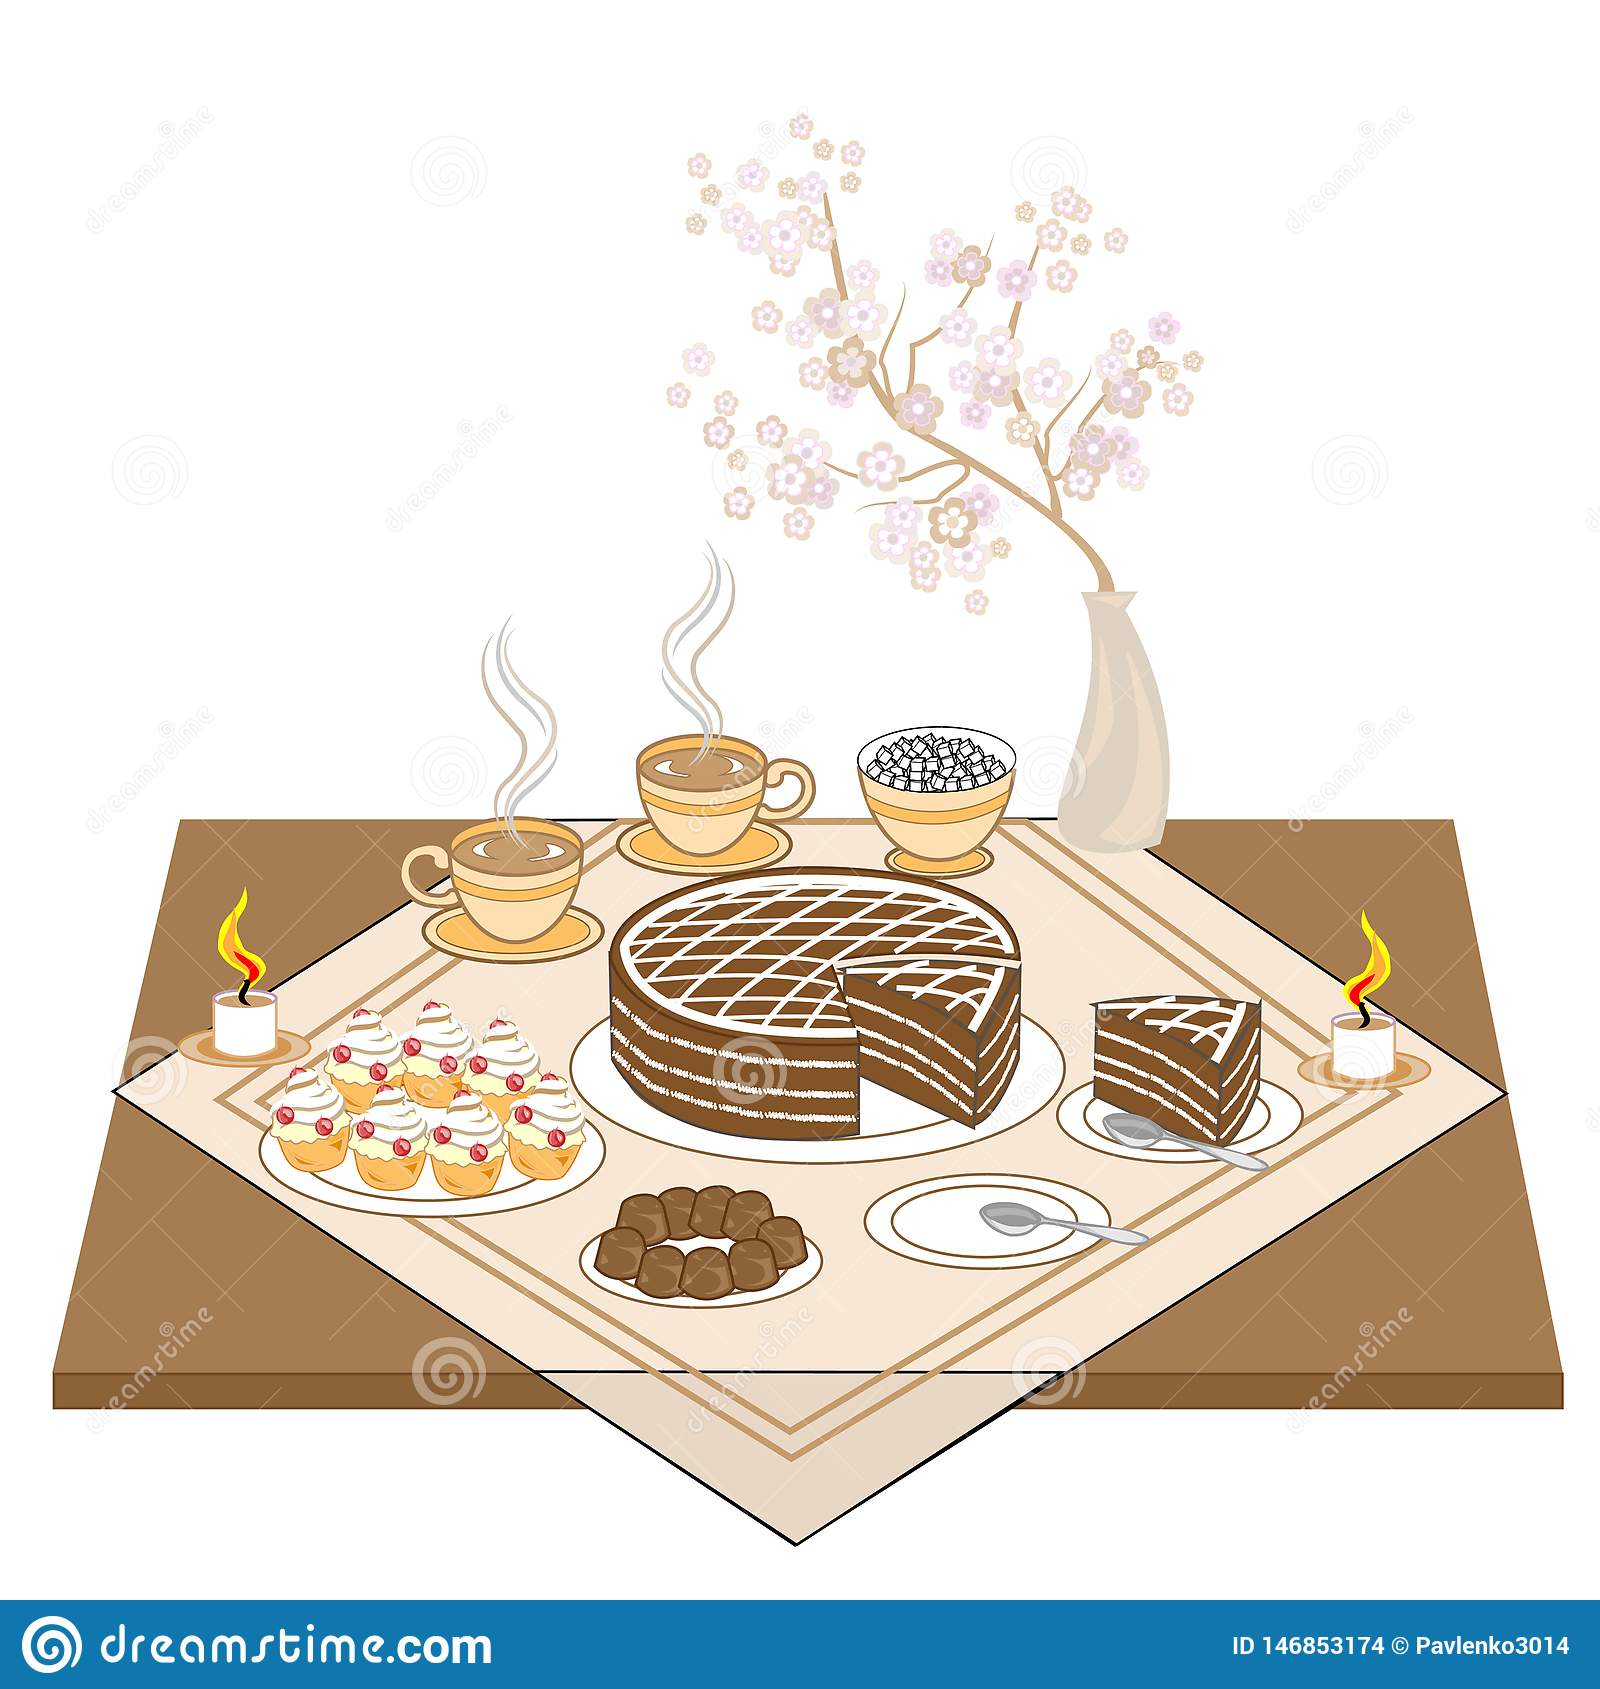 A festive table with candles and a chocolate cake. Hot tea or coffee, sweets, muffins - an exquisite treat for every taste.